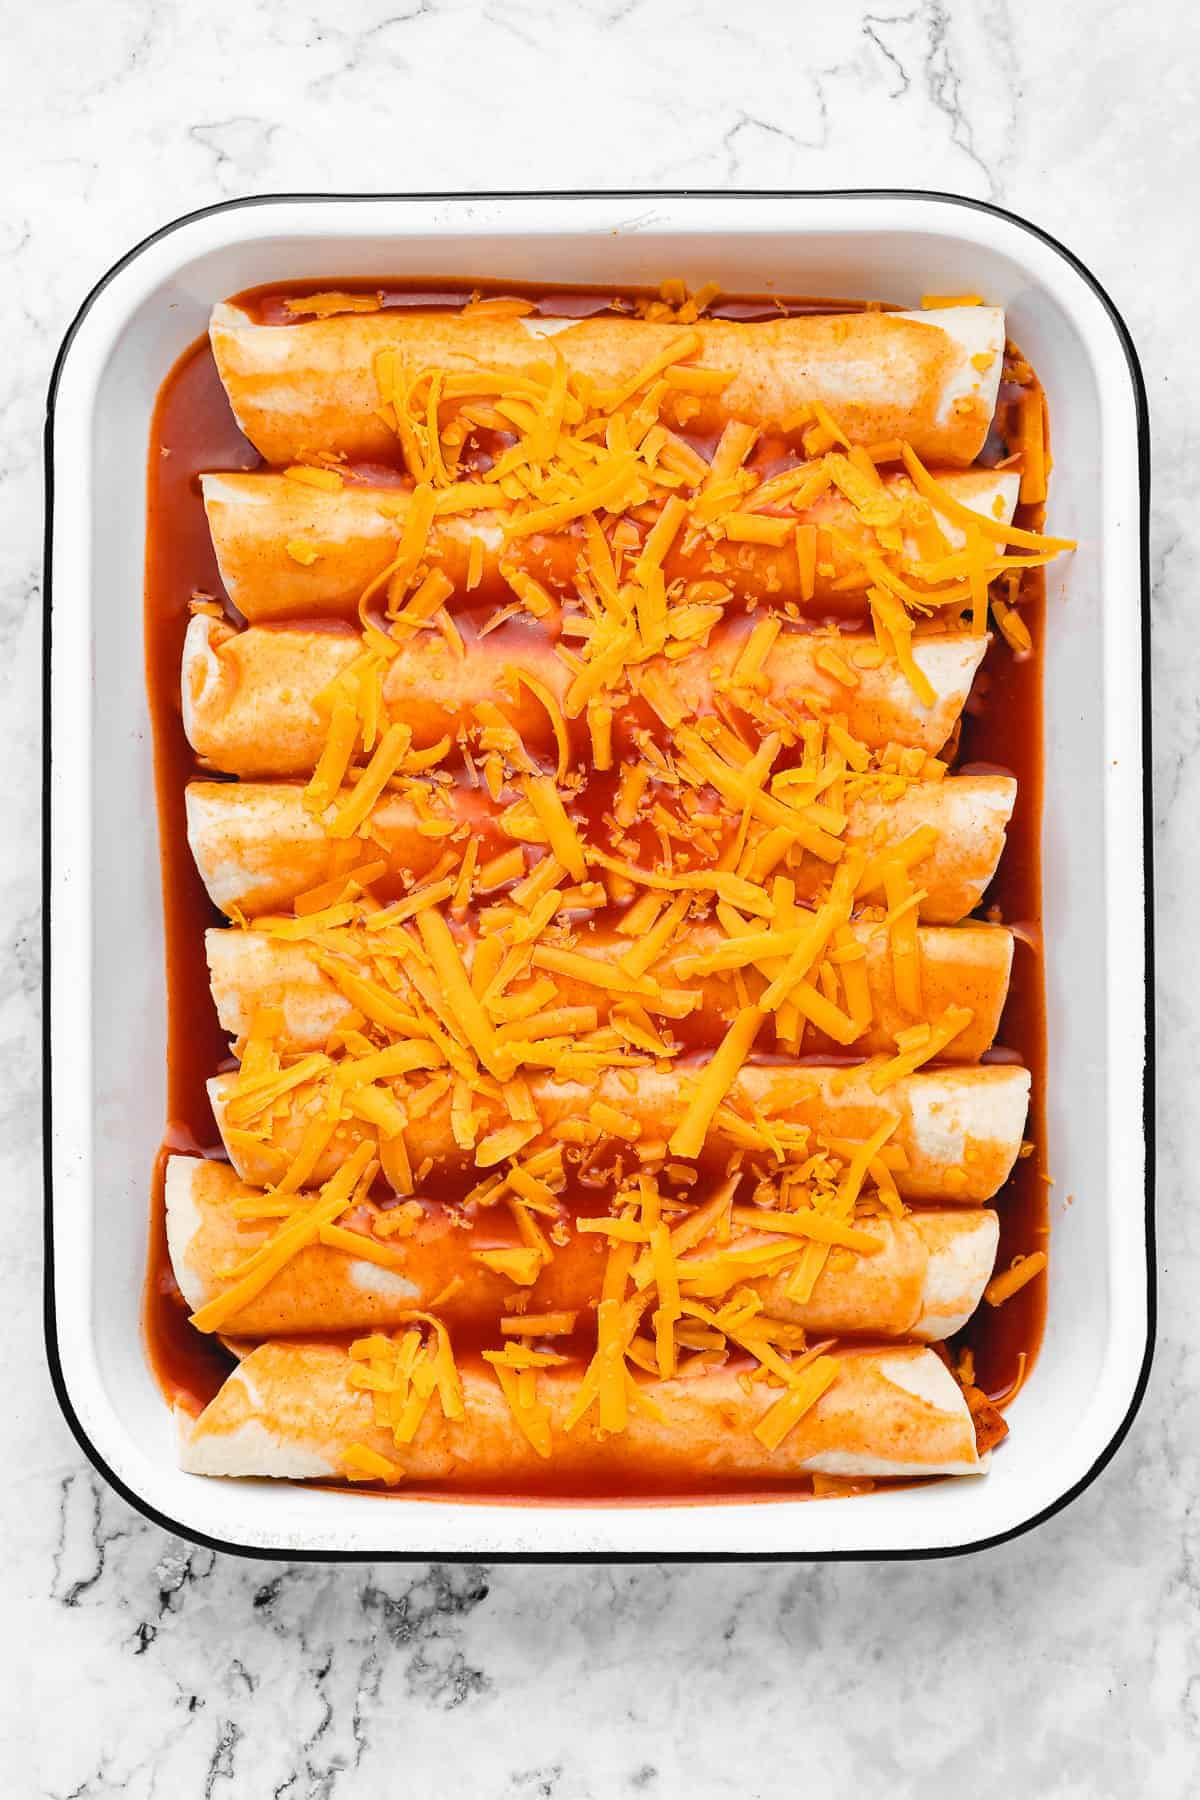 Stuffed tortillas with enchilada sauce and cheese.